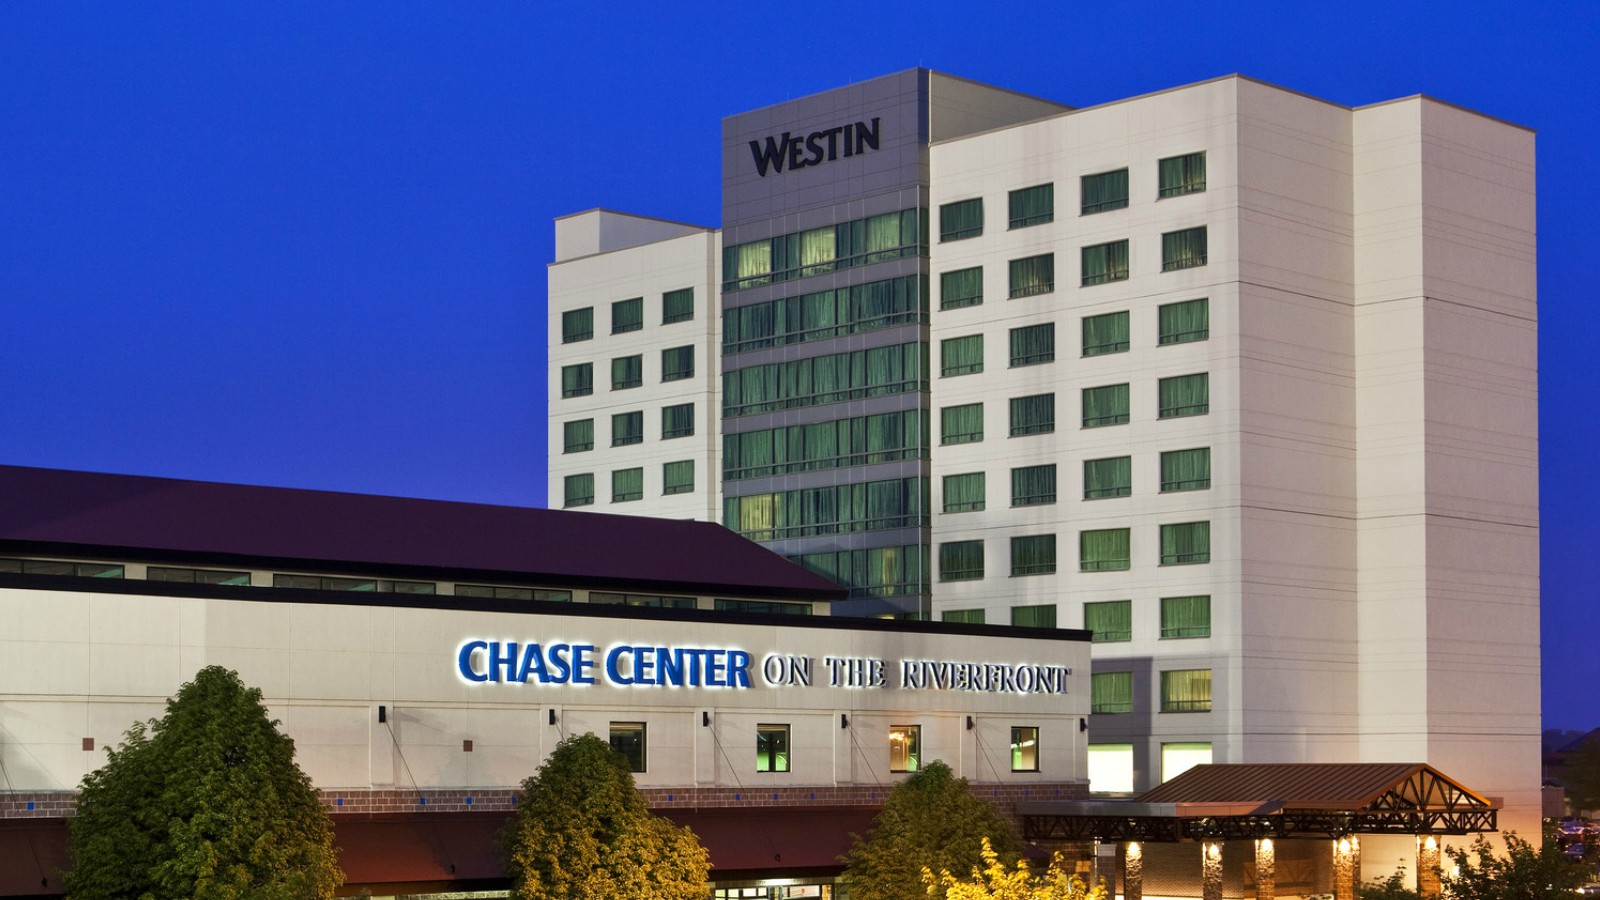 The Westin Wilmington - Chase Center